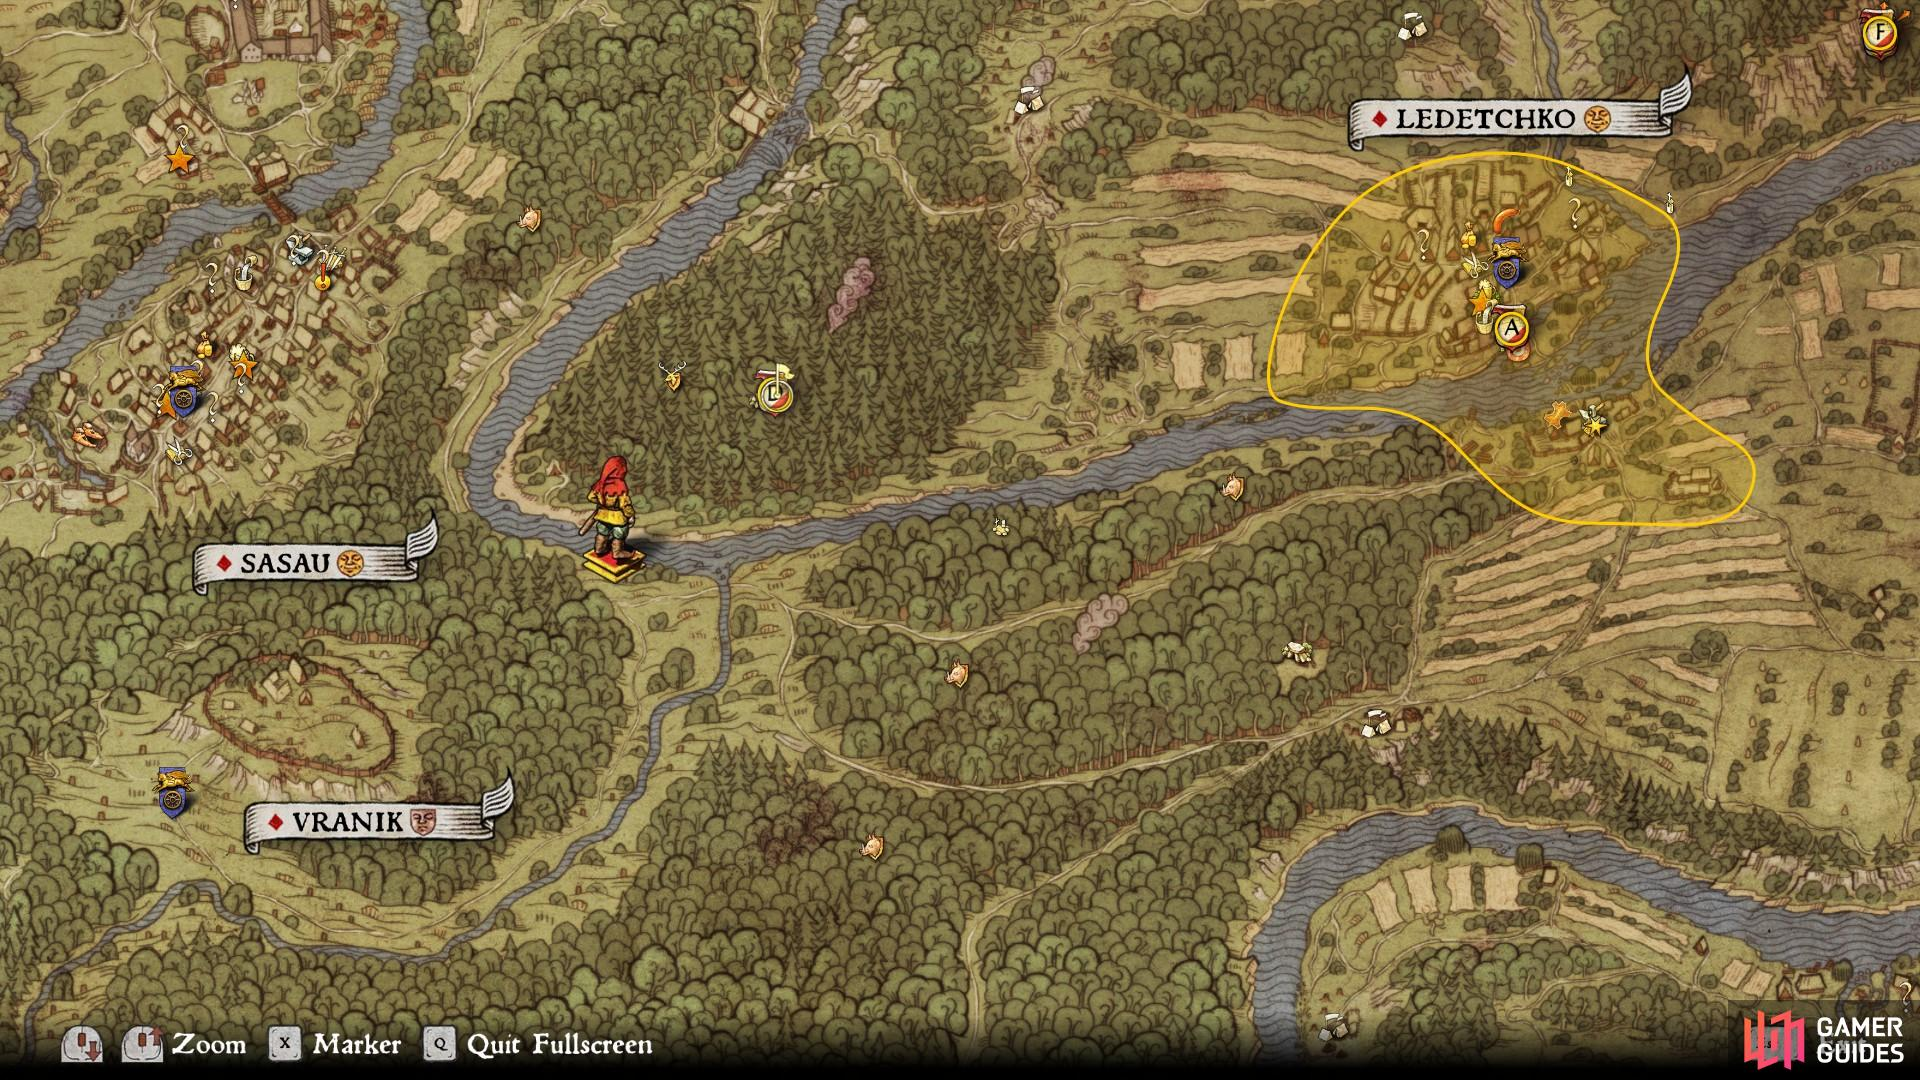 The quickest way to the mine shaft on the promontory is by following the river until you reach a crossing, located at the position above.